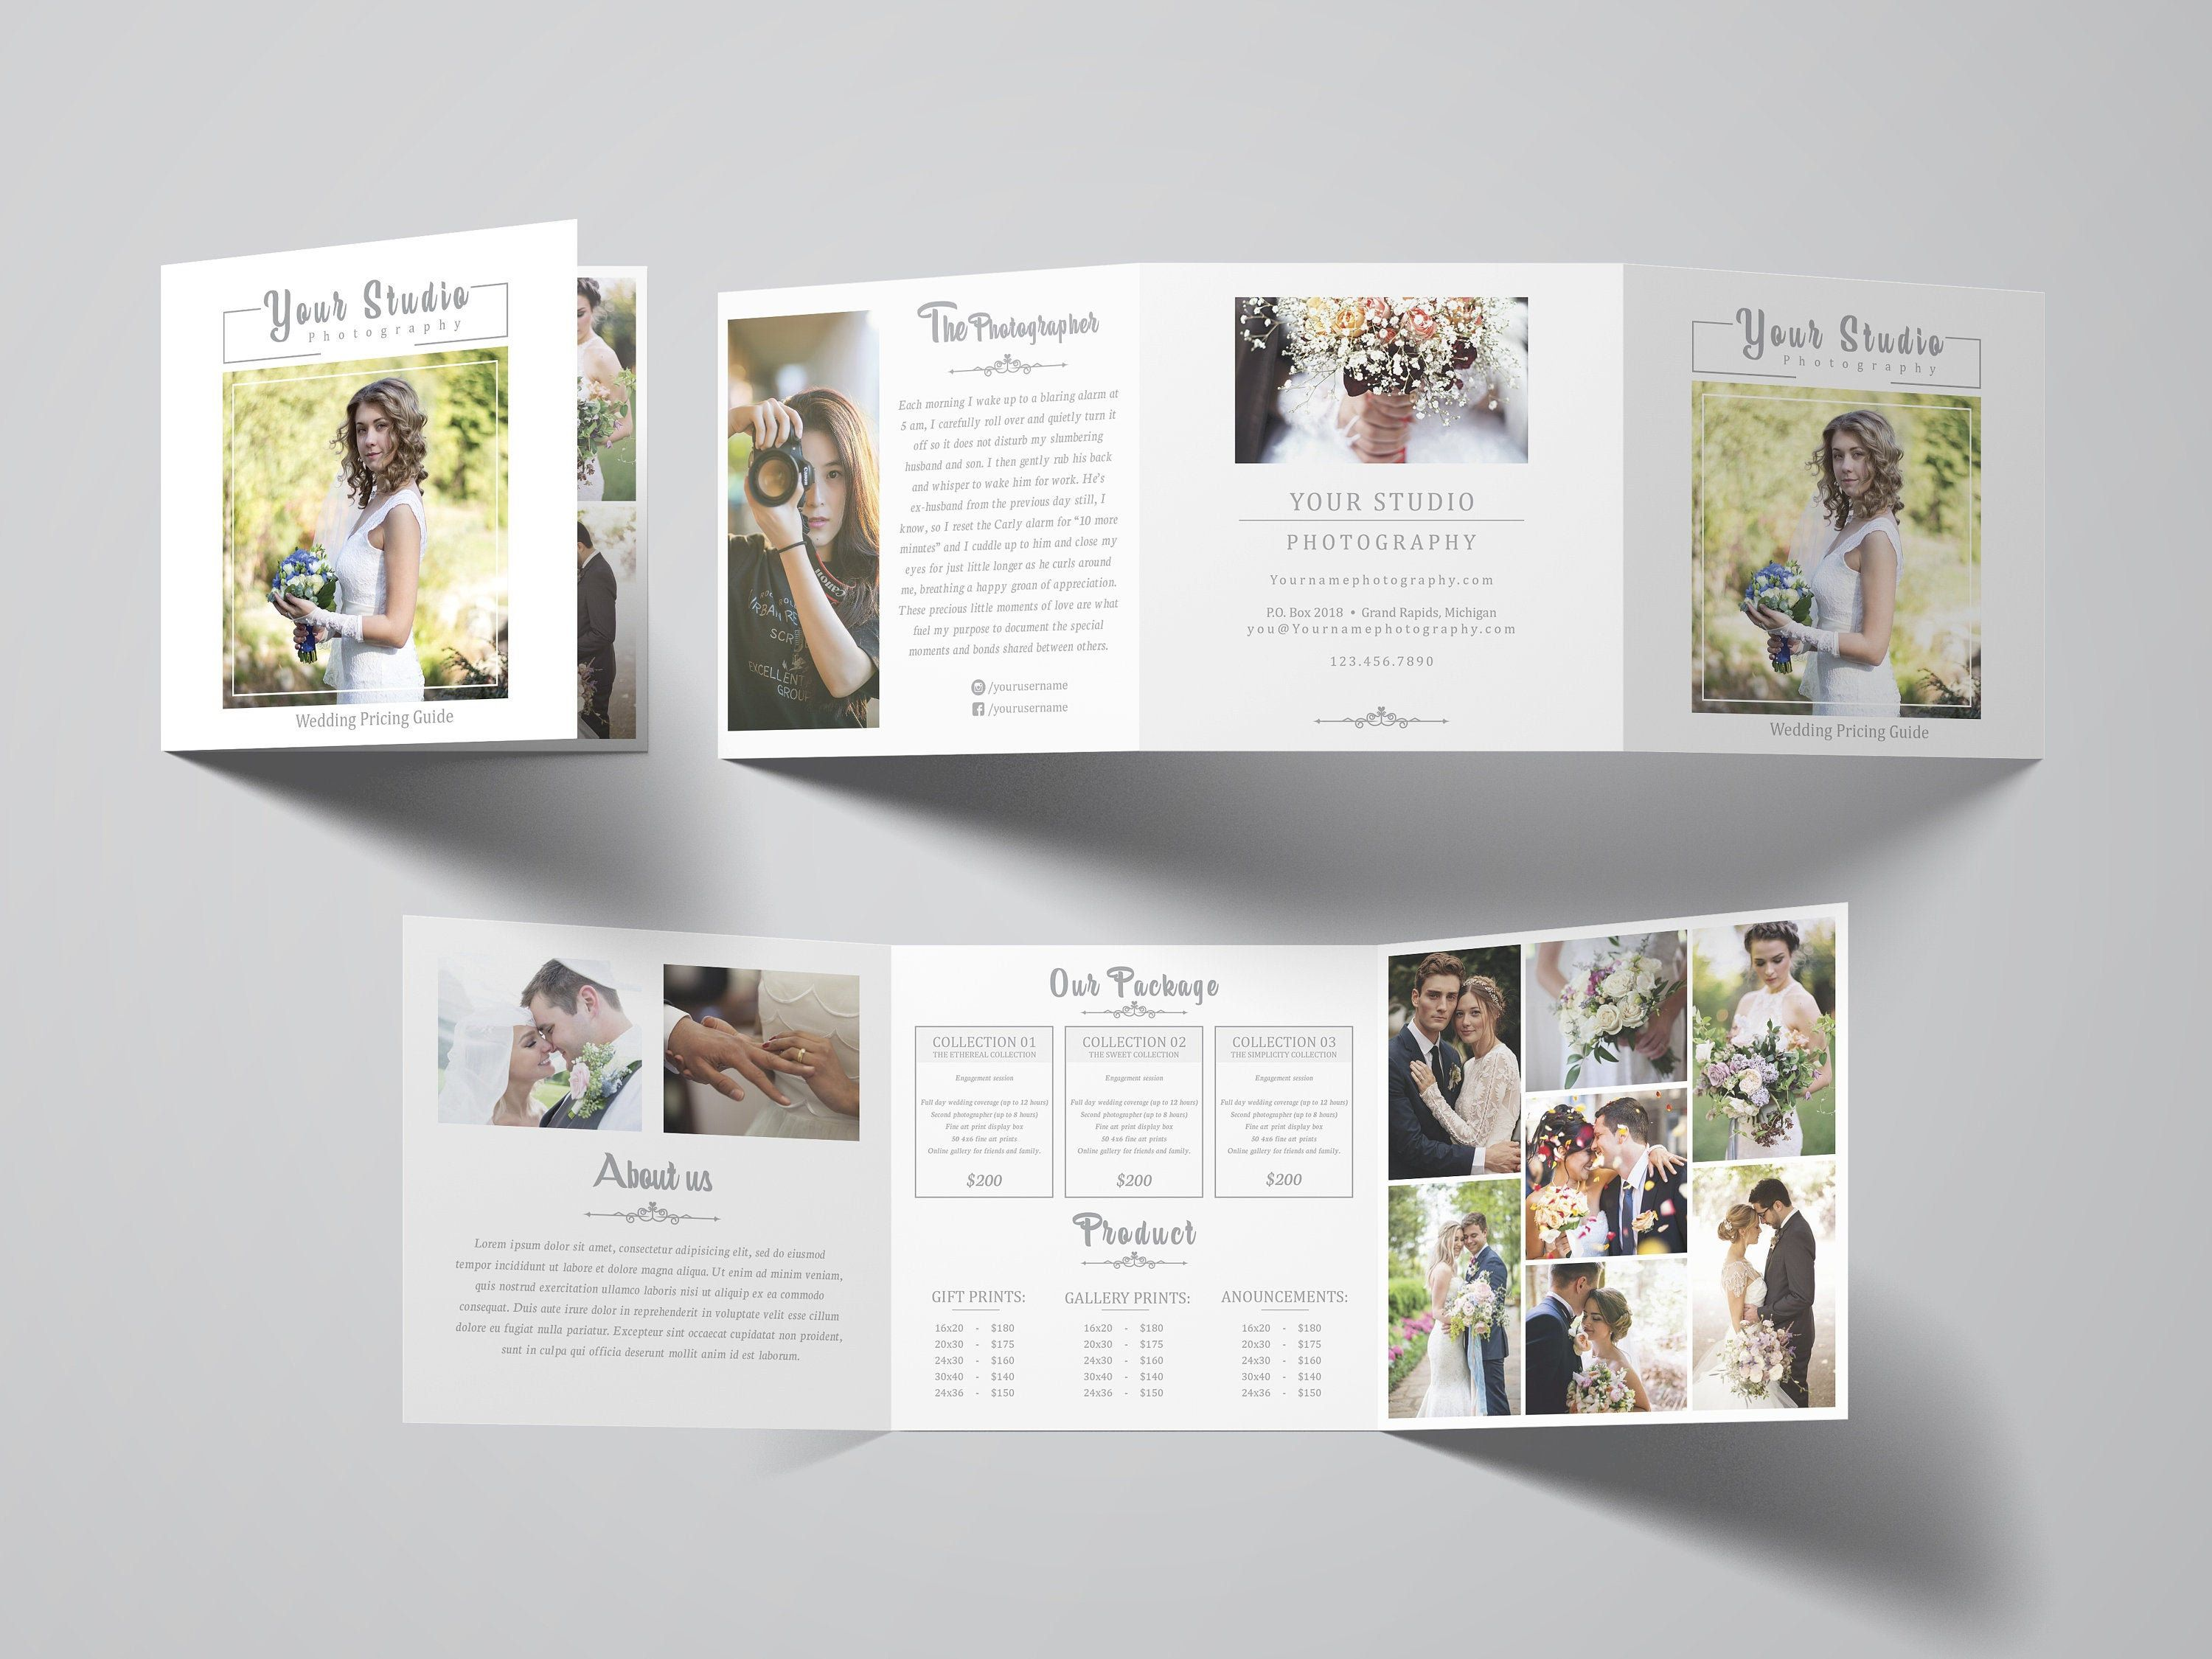 Photography Square Trifold Brochure 5x5 Accordion Template Etsy Photography Brochure Photography Marketing Templates Photographers Price List